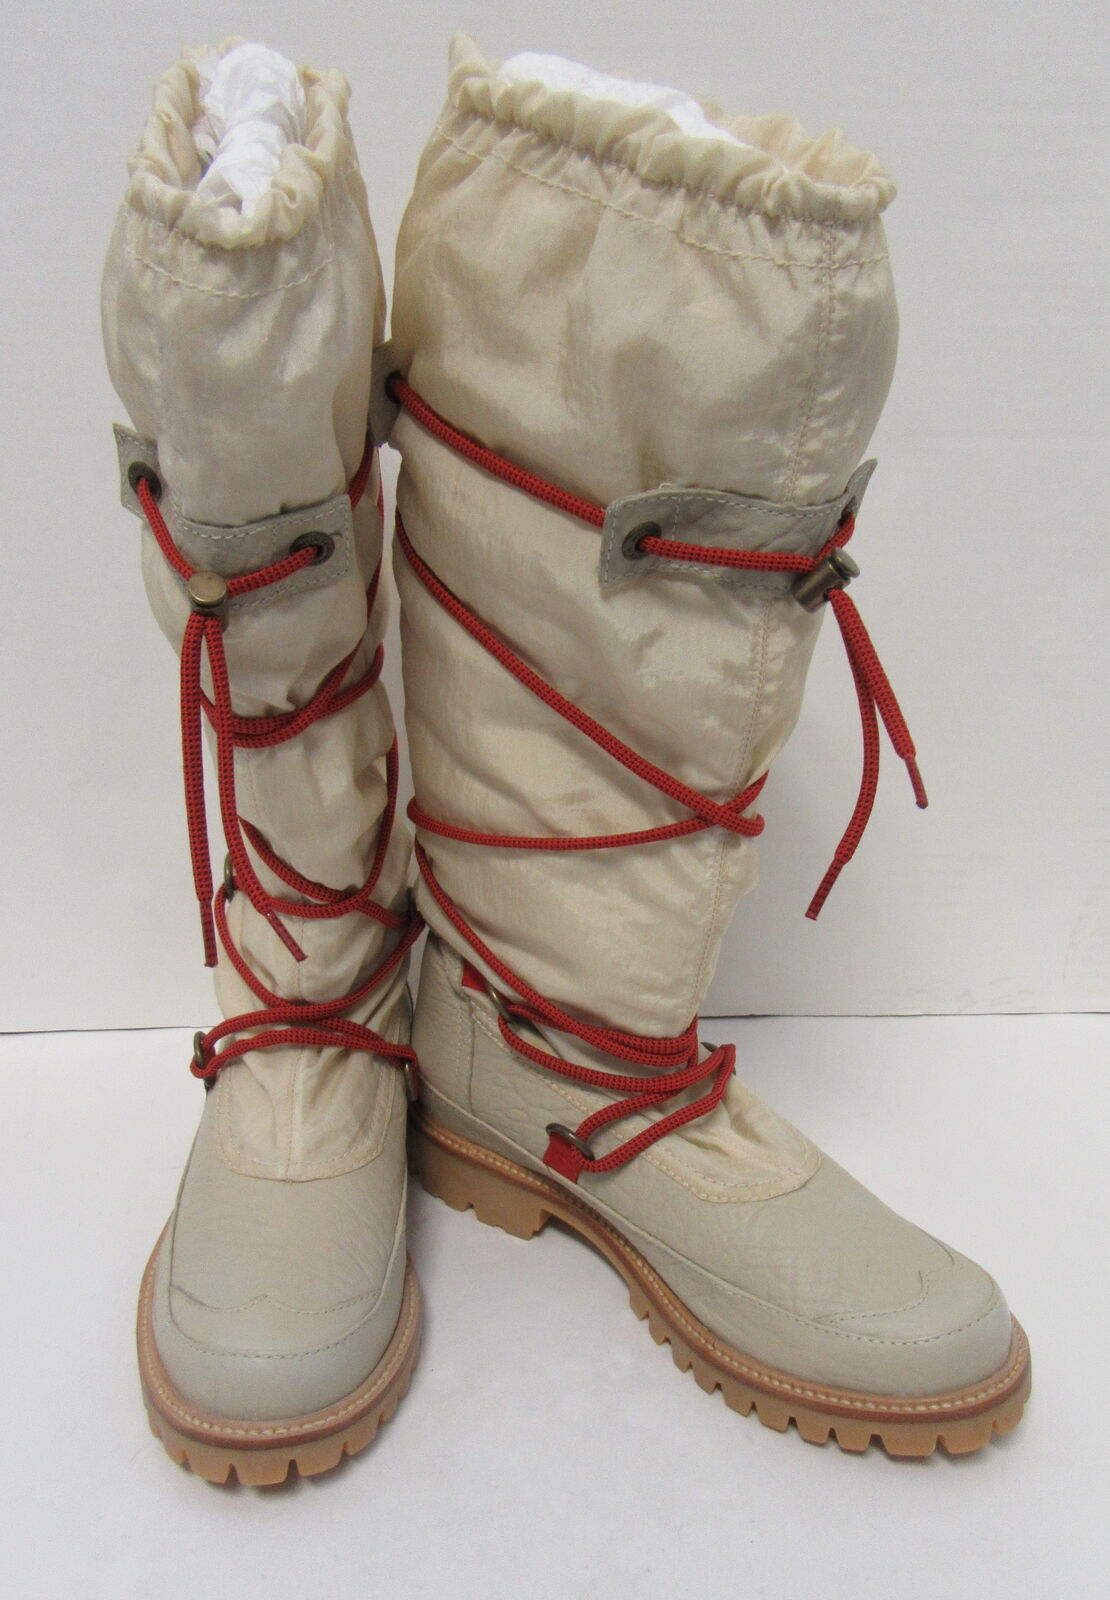 HUNTER Summit Amazona Boots in Beige with Adjustable Red Rope Size 8